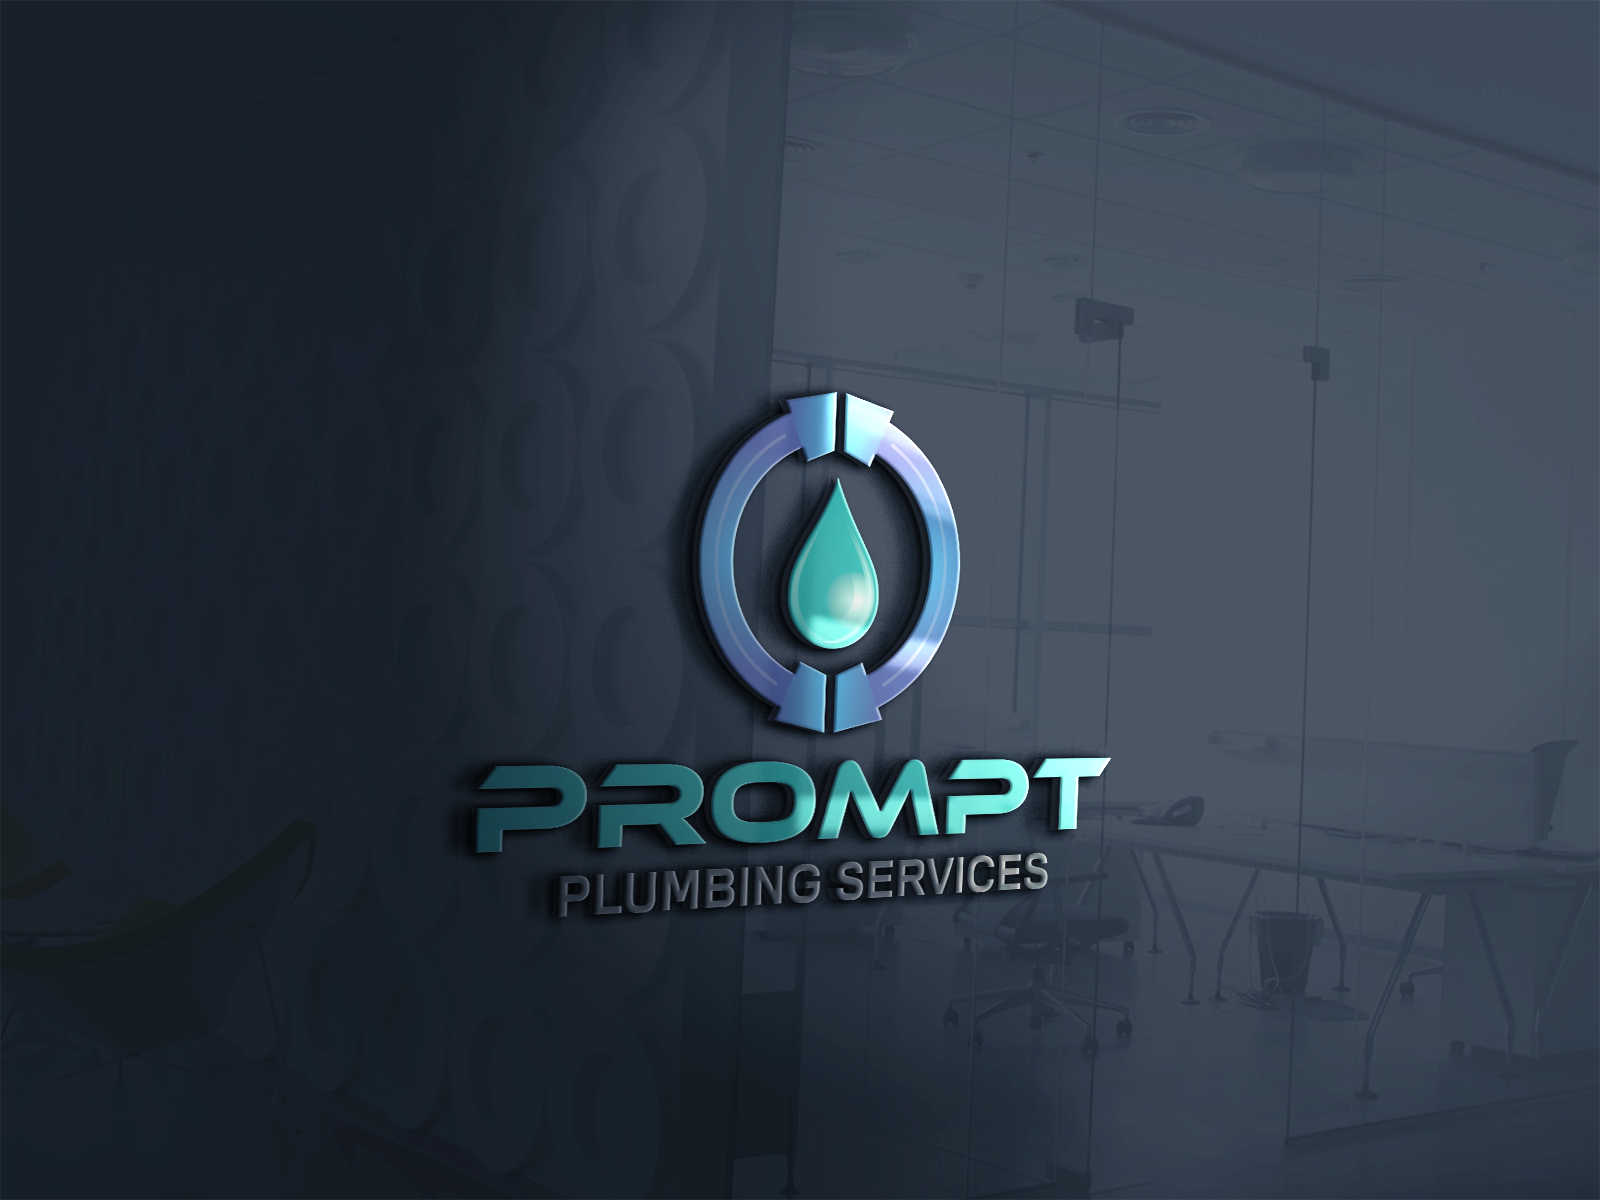 Logo Design by Ahaan - Entry No. 81 in the Logo Design Contest Artistic Logo Design for Prompt Plumbing Services.